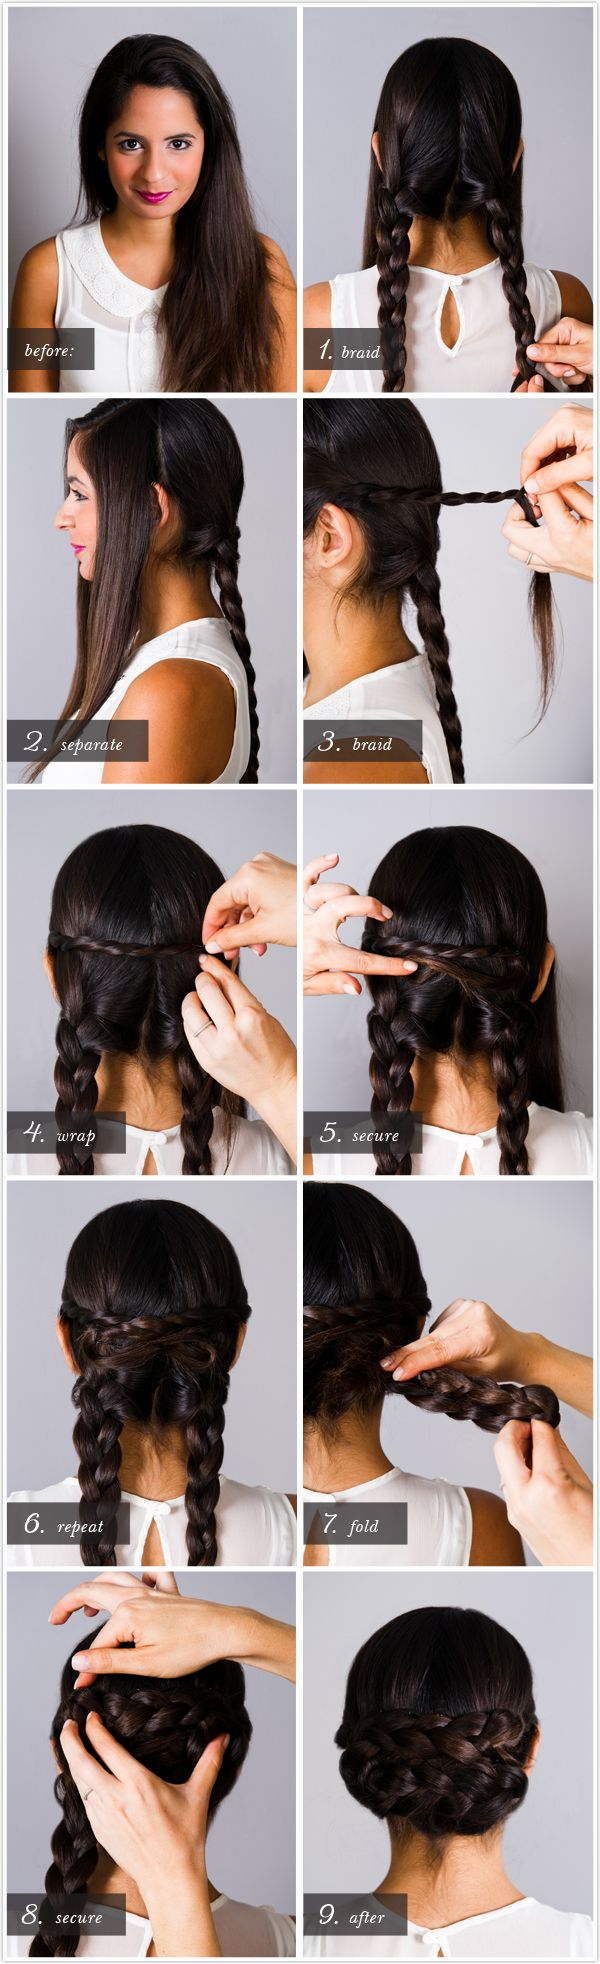 Braided chignon - adorable hair!Diy Hairstyles, Braids Hairstyles, Hair Ideas, Braided Updo, Hair Tutorials, Braids Updo, Long Hair, Hair Style, Braids Buns